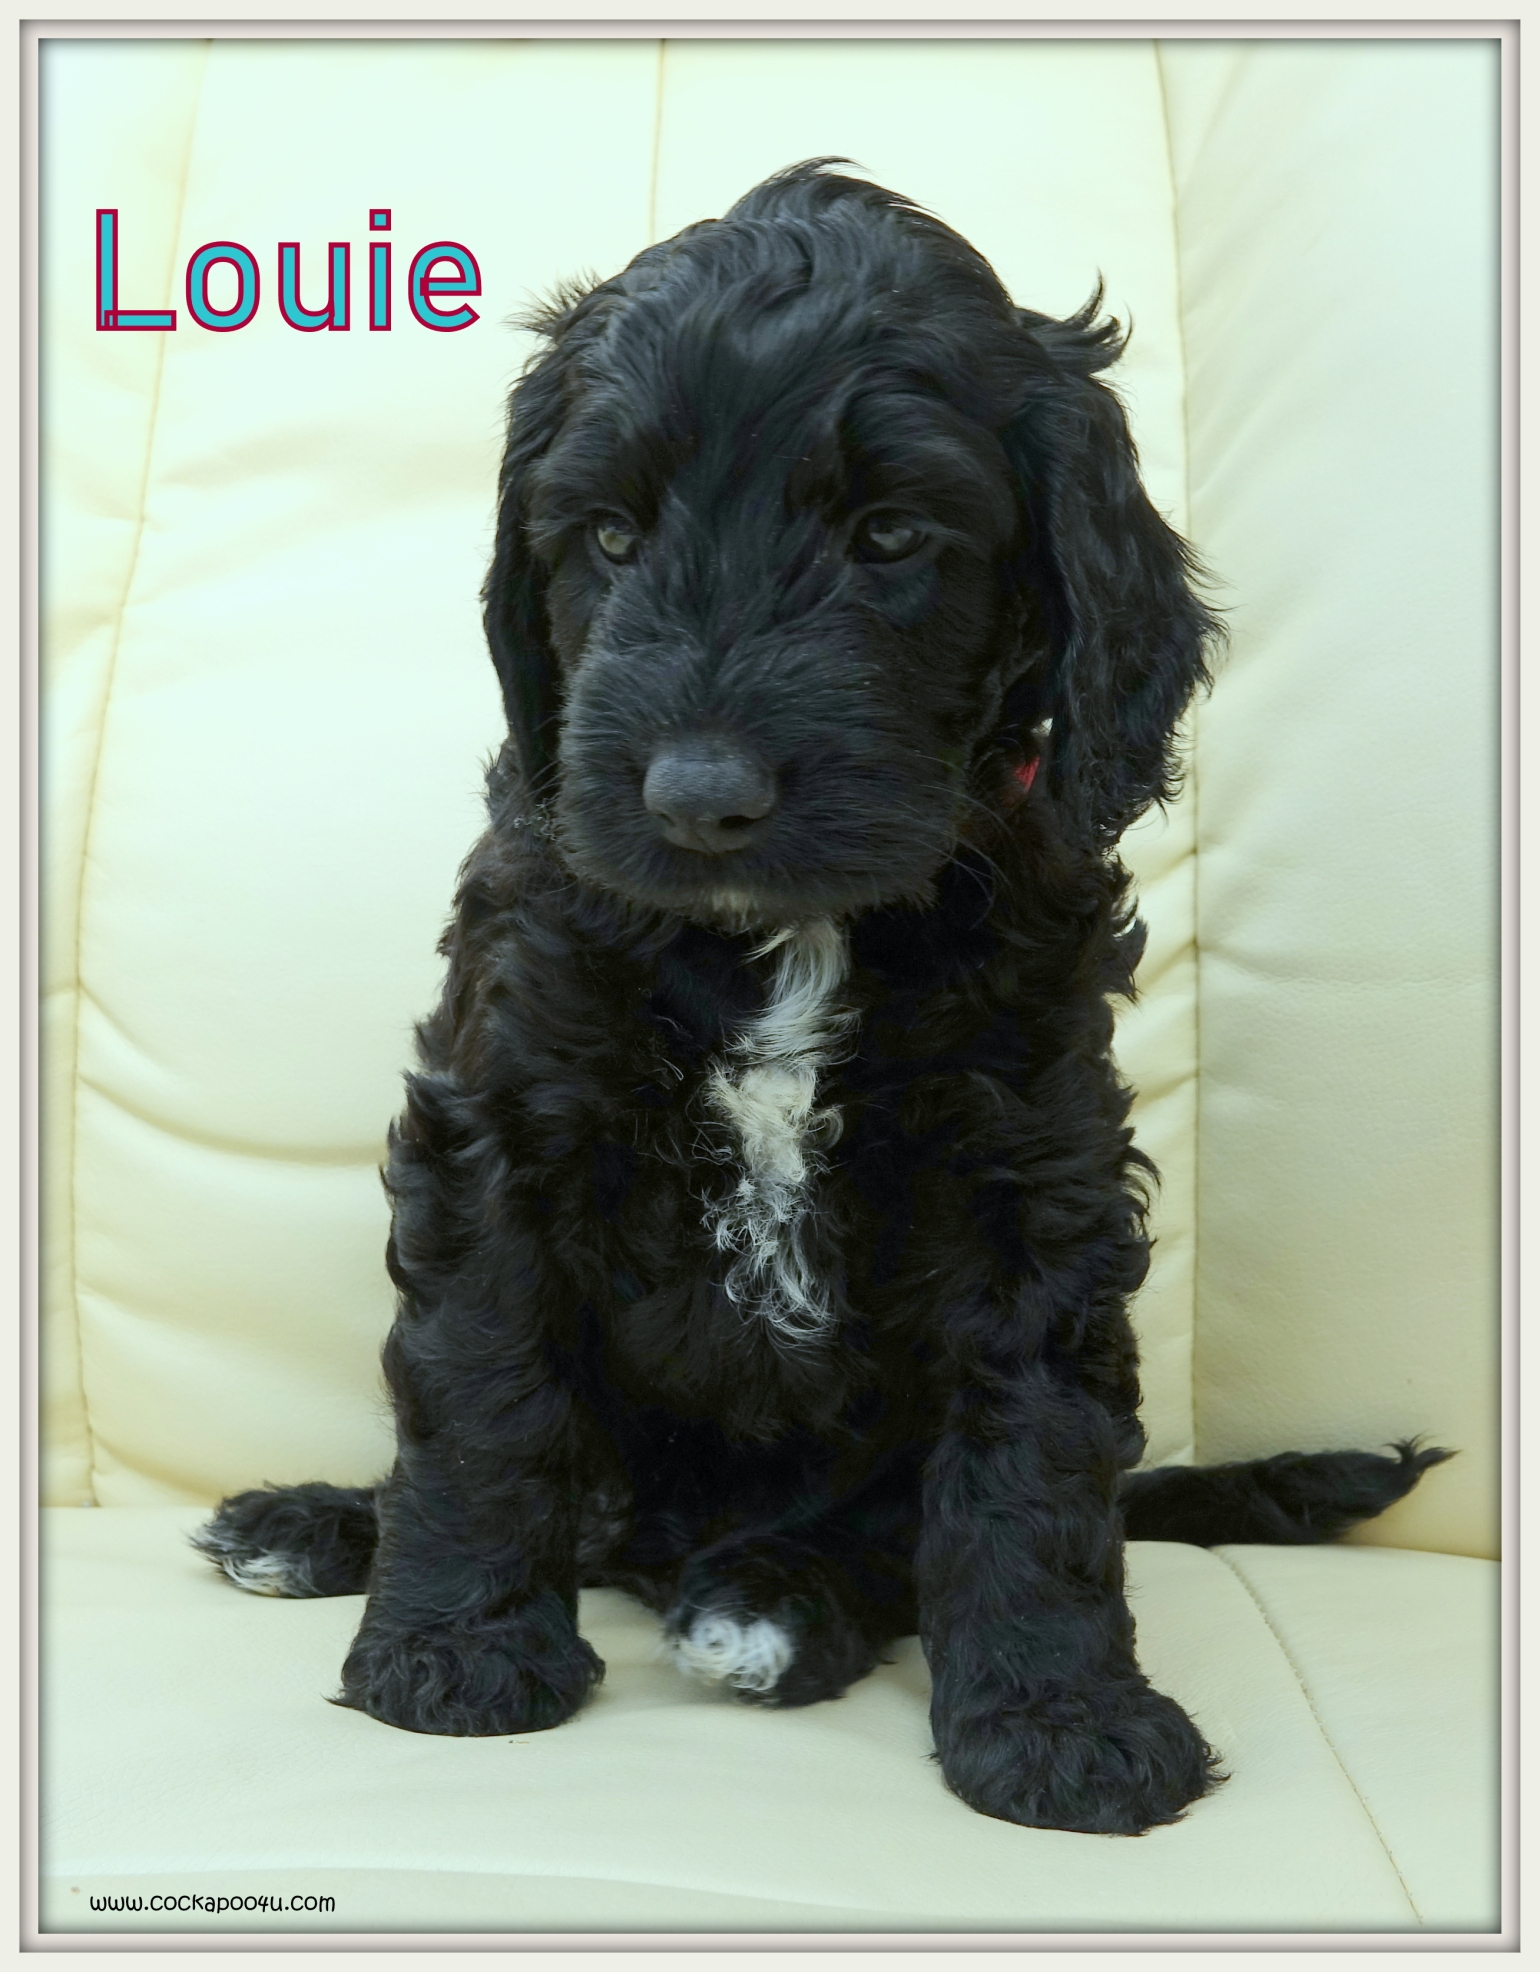 4. Louie aNamed.JPG